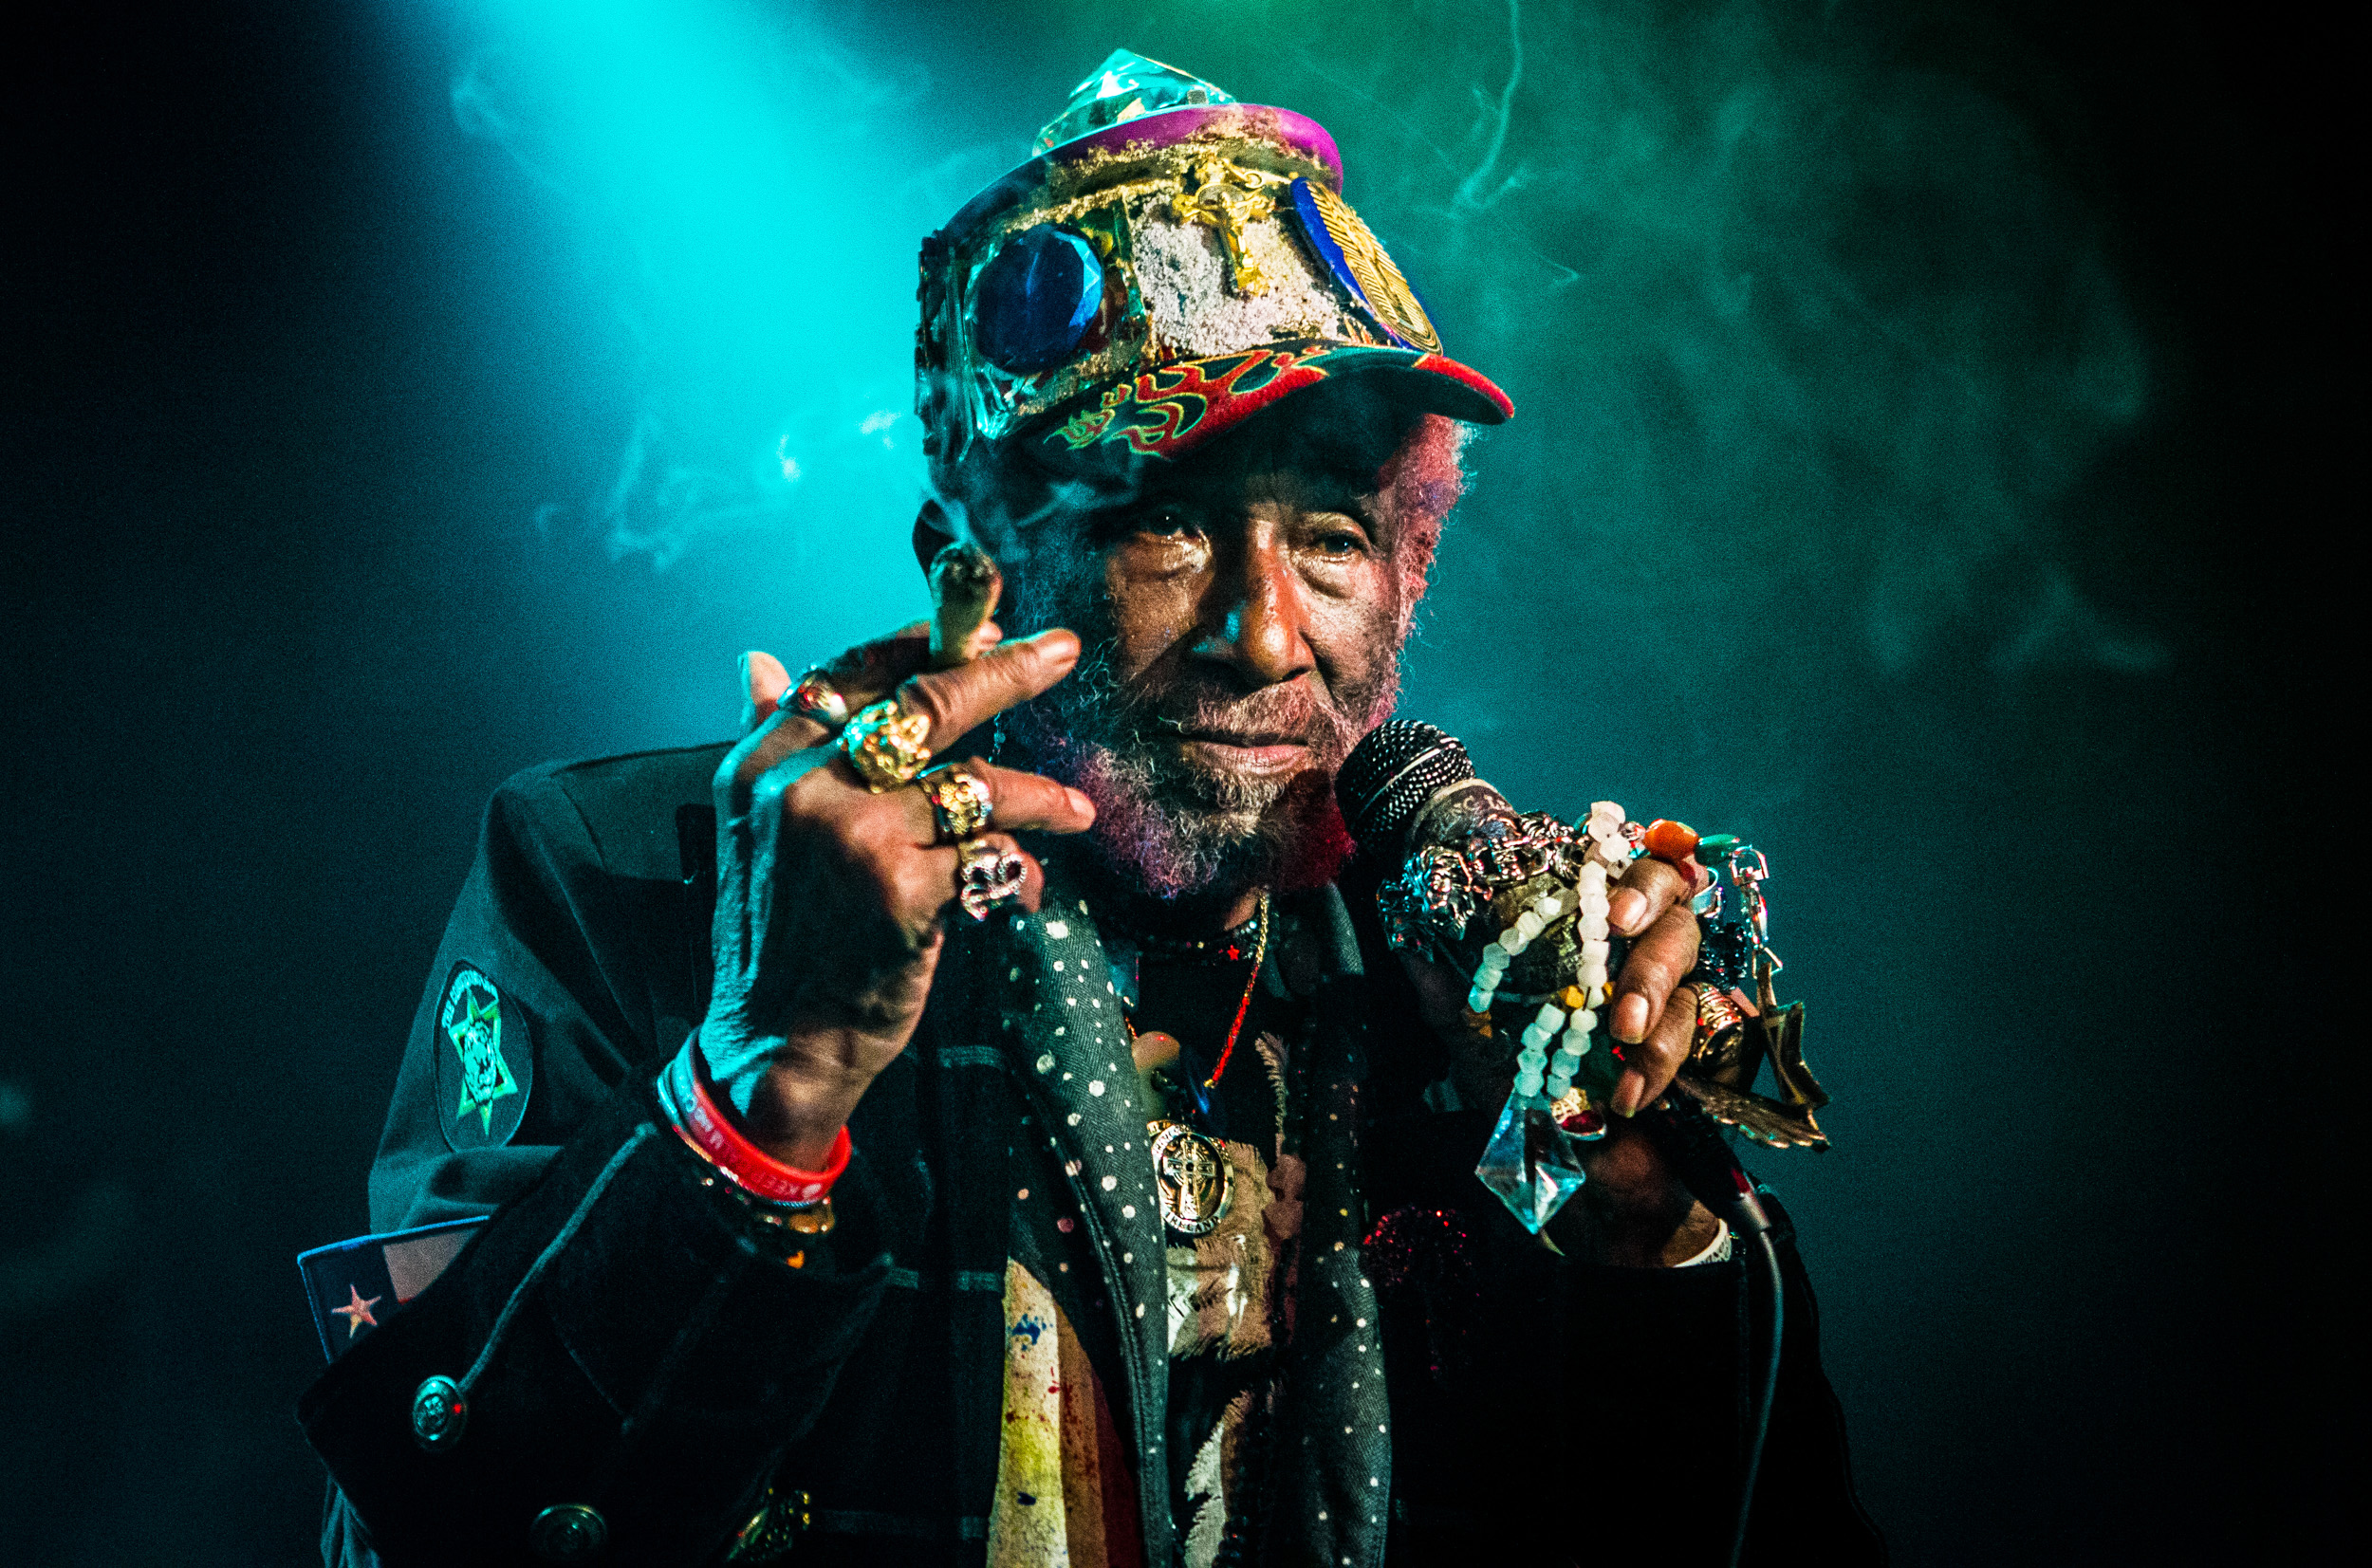 Lee 'Scratch' Perry, reggae pioneer who was producer for Bob Marley, dies at 85